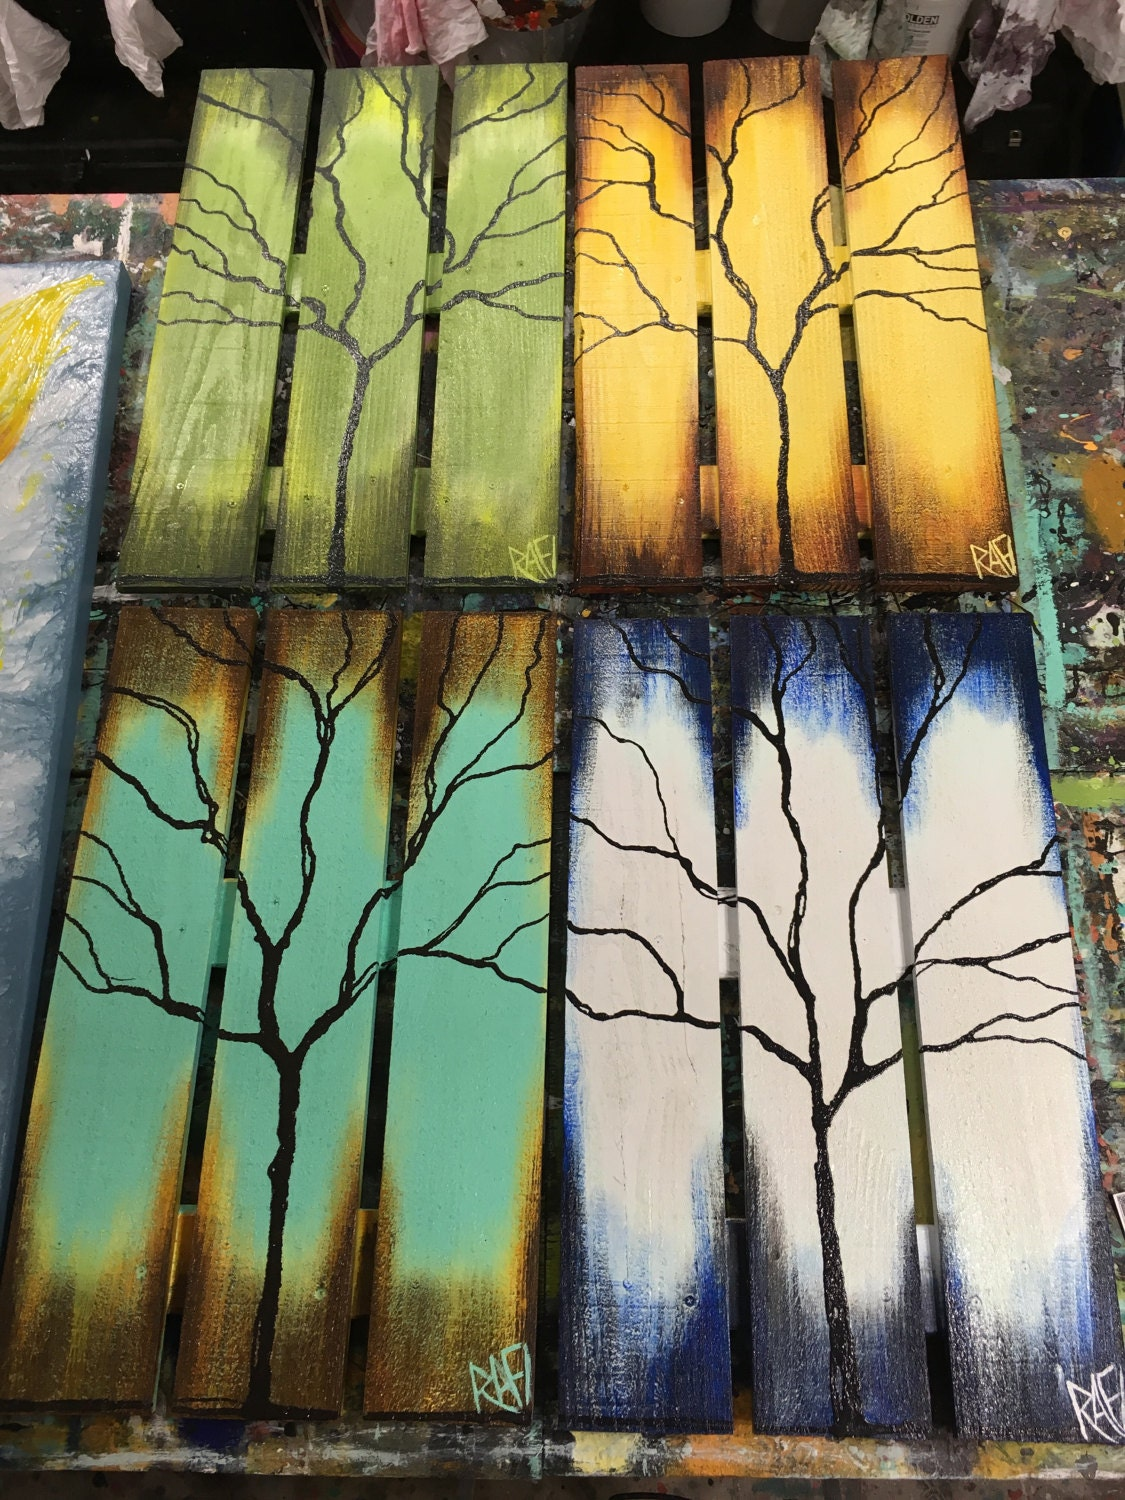 Upcycled Wall Art Reclaimed Wood Wall Art Seasons Of Change Abstract Tree Paintings